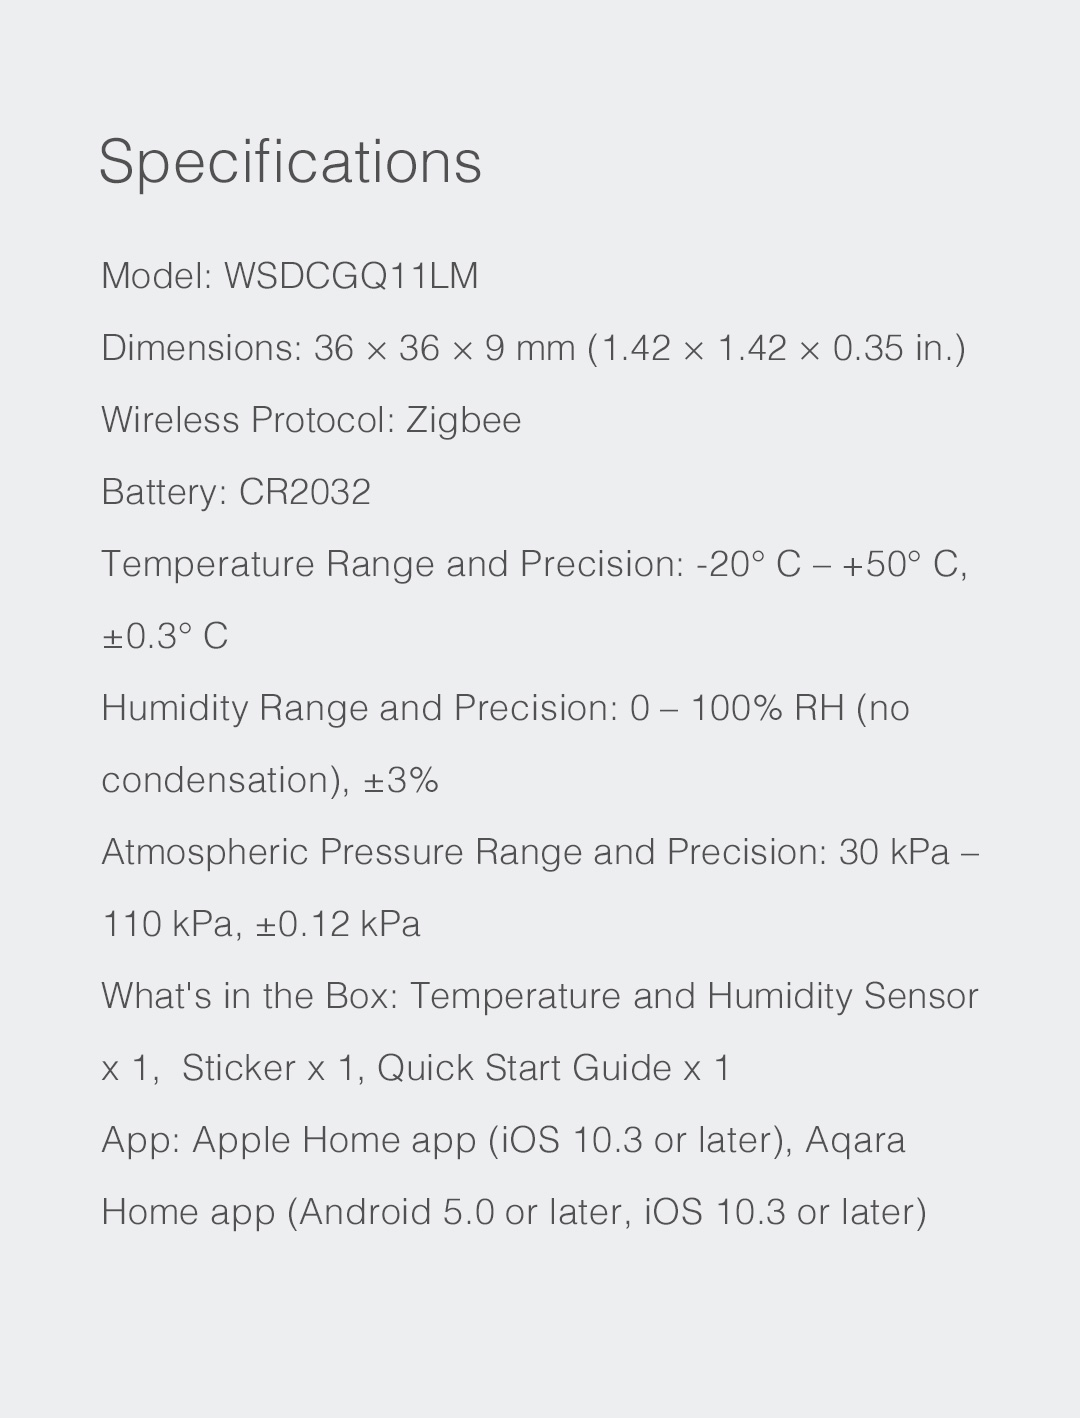 Smart Temperature/Humidity sensor specifications